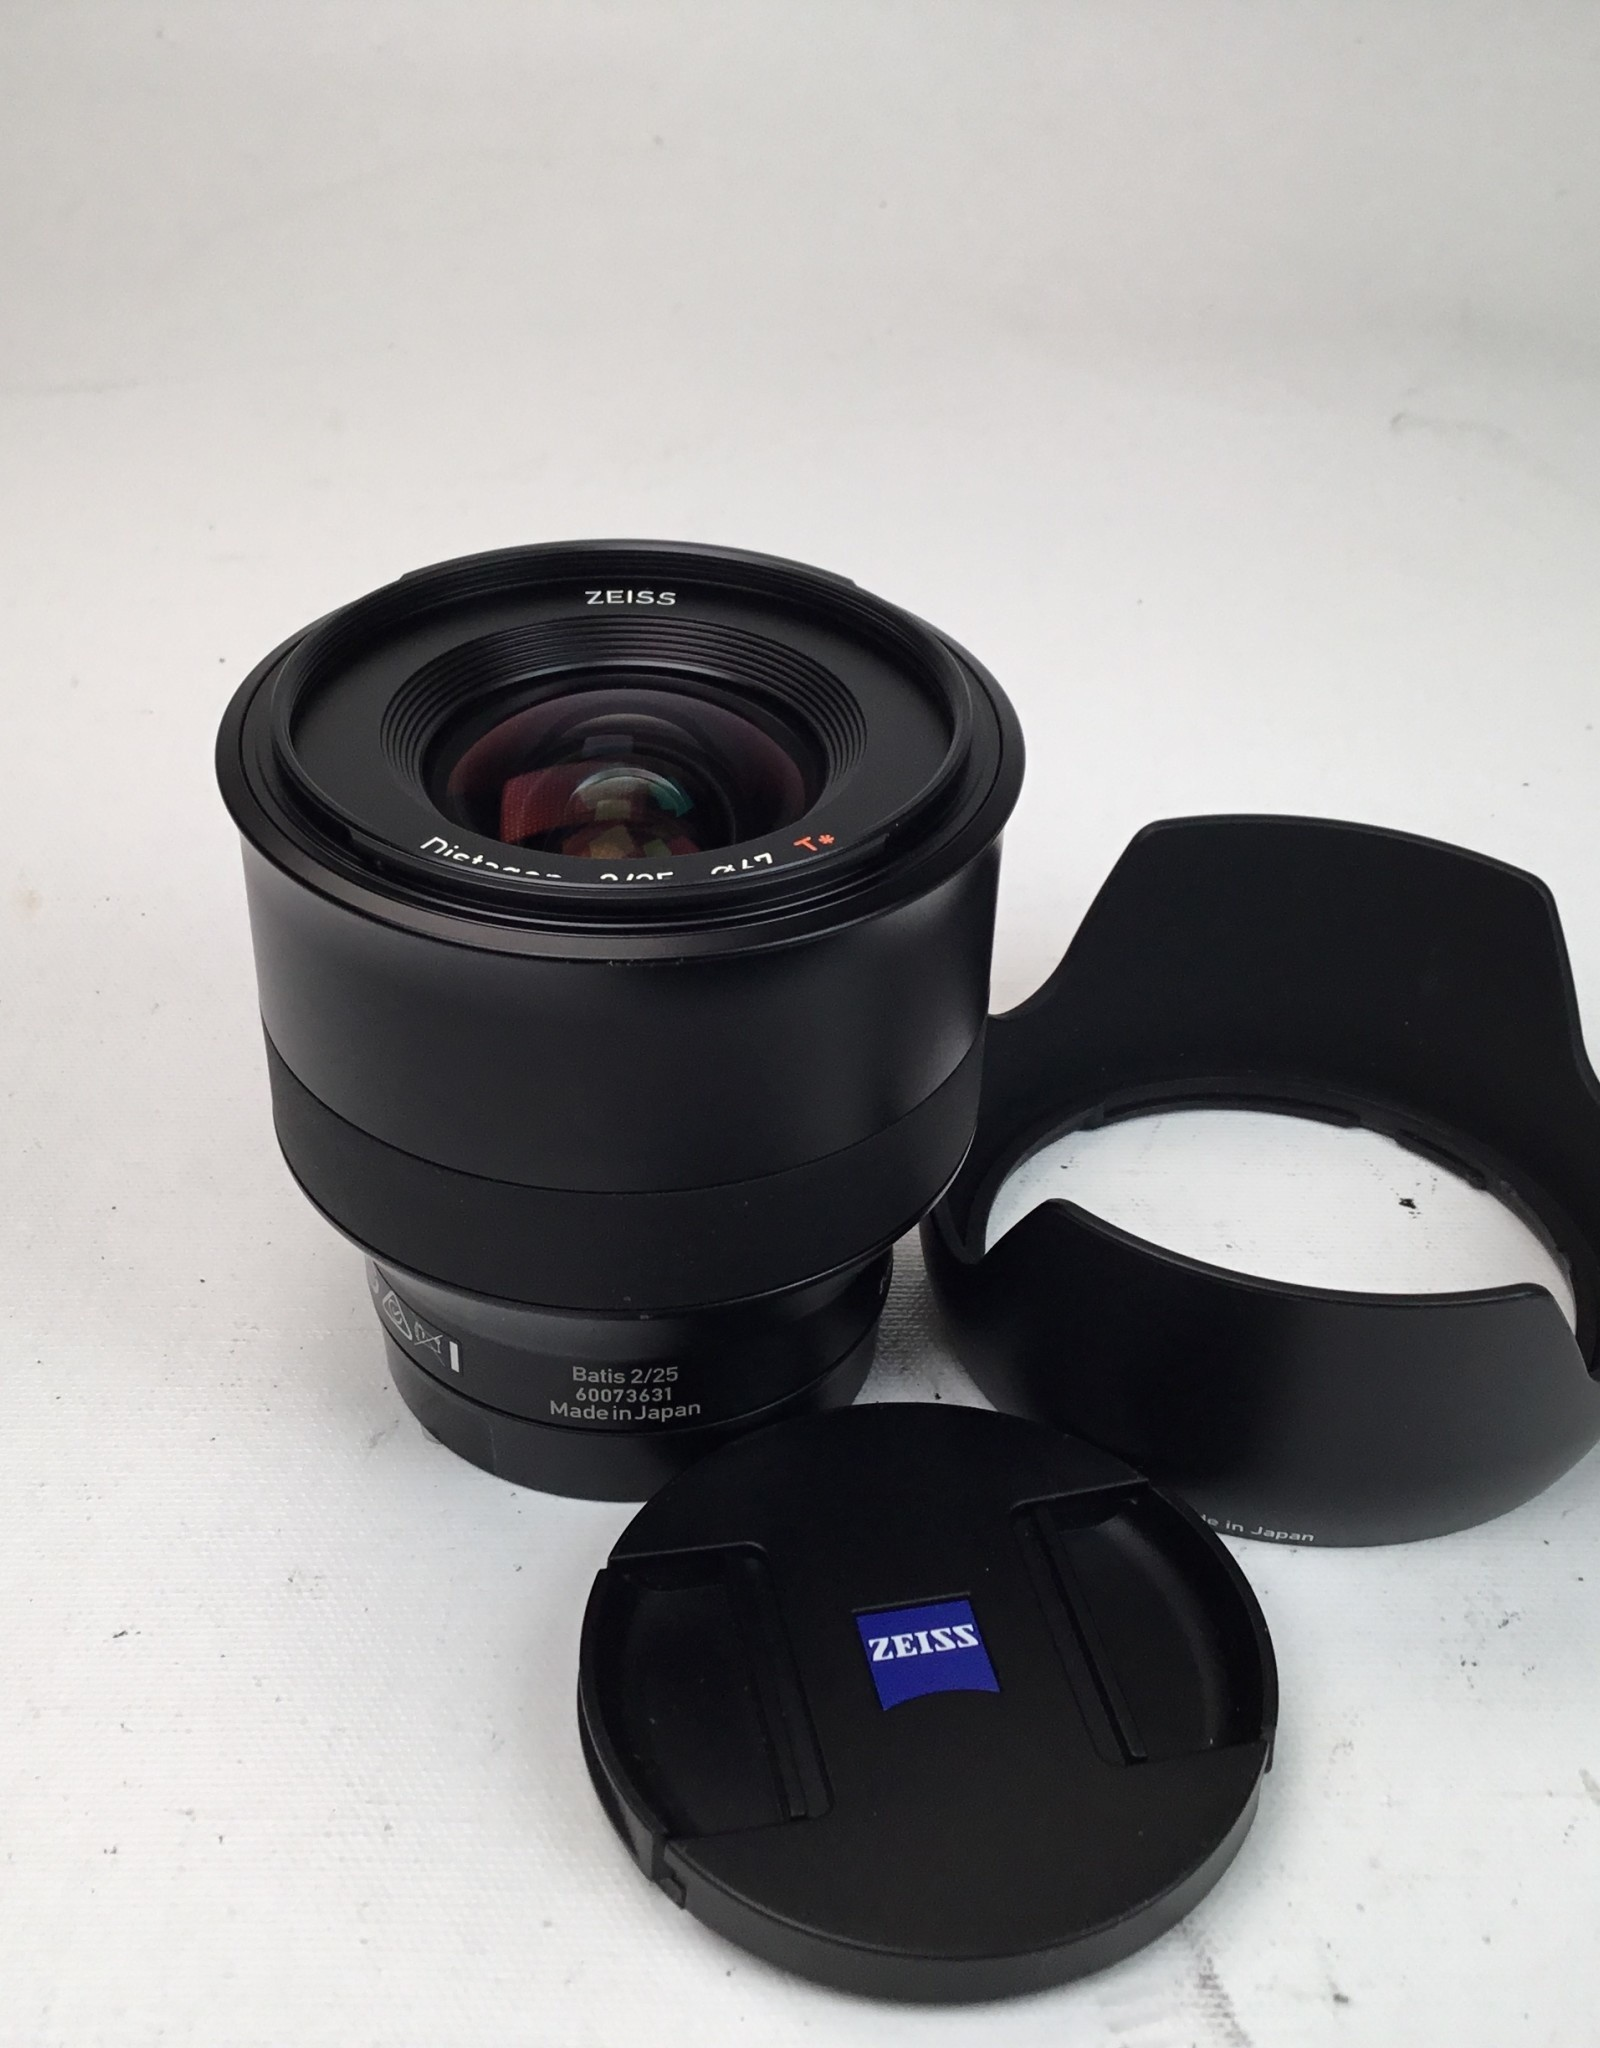 ZEISS Zeiss Batis 25mmmm f2.8 Lens for Sony E Used EX